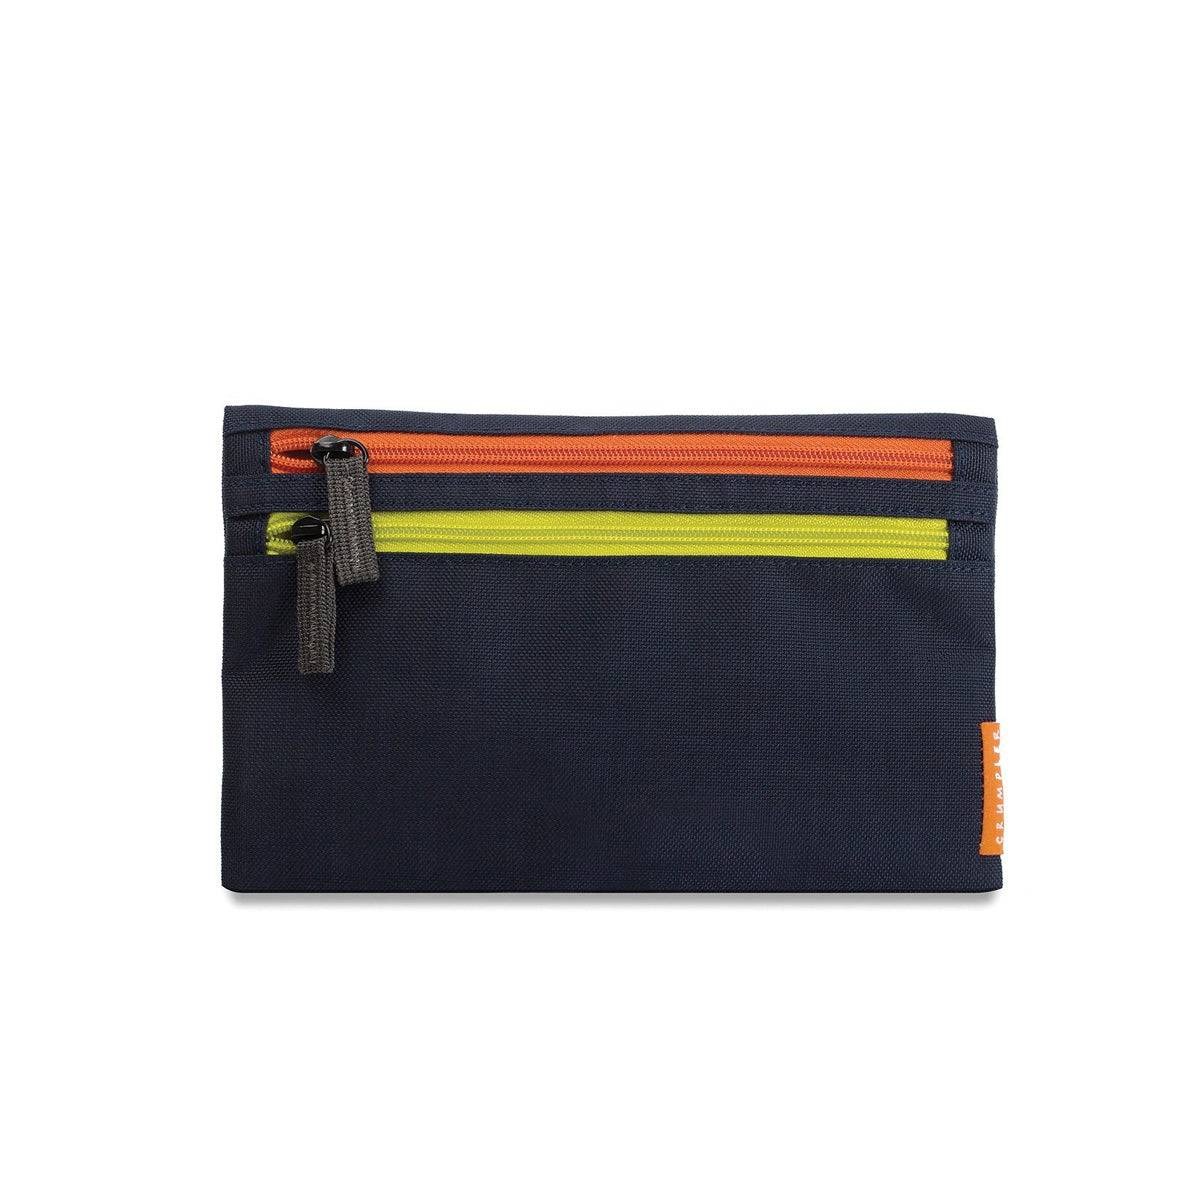 Crumpler Zippie Travel Pouch Travel organizer dk. navy / carrot